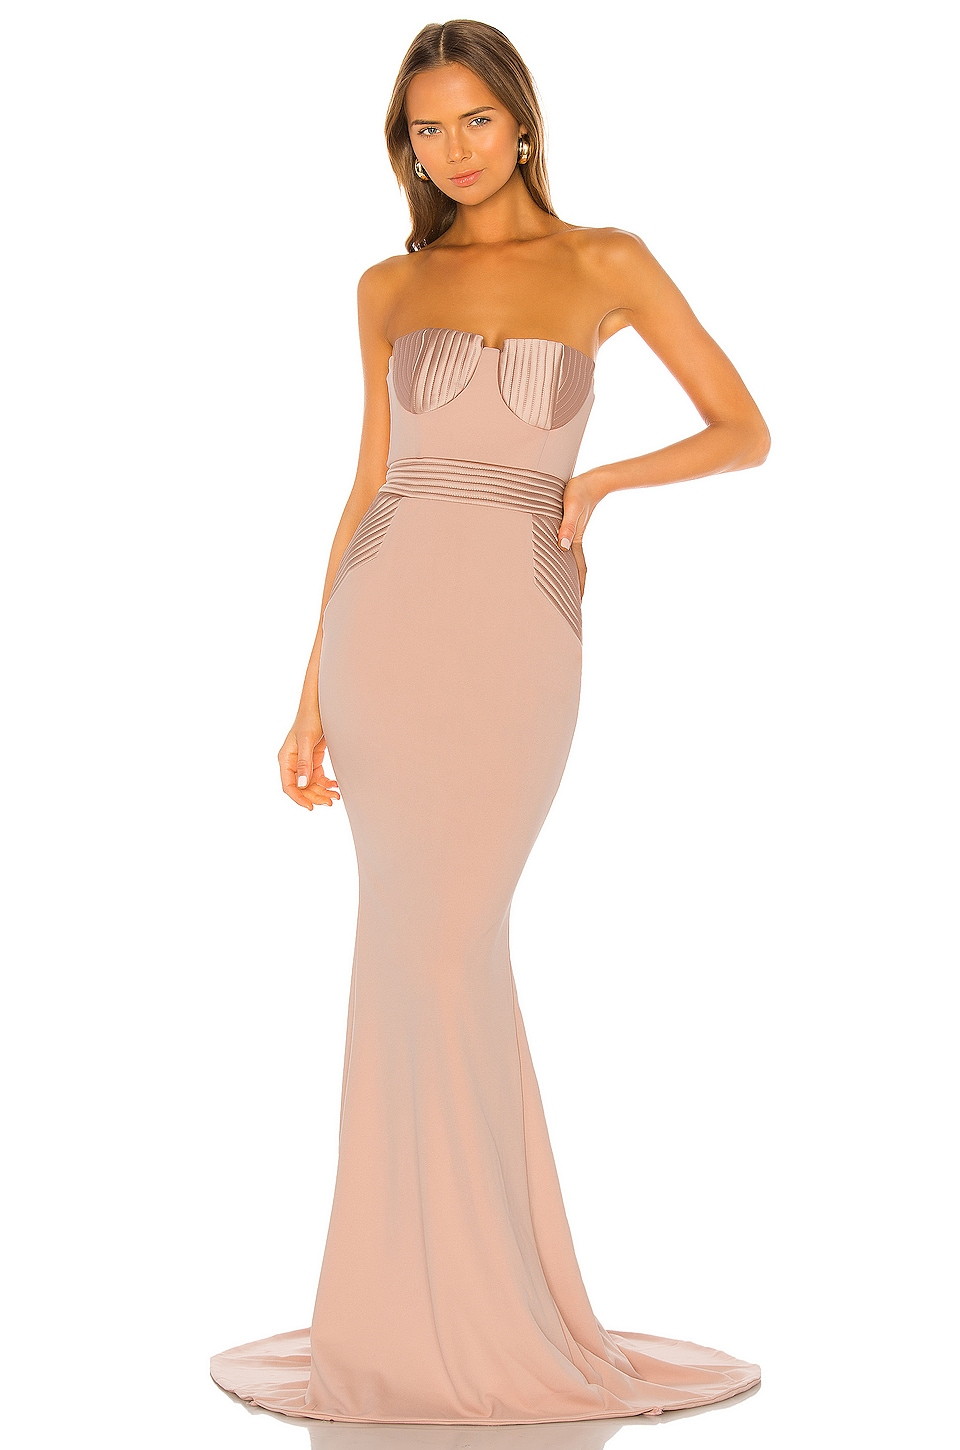 Zhivago Fairmont Gown in Dawn